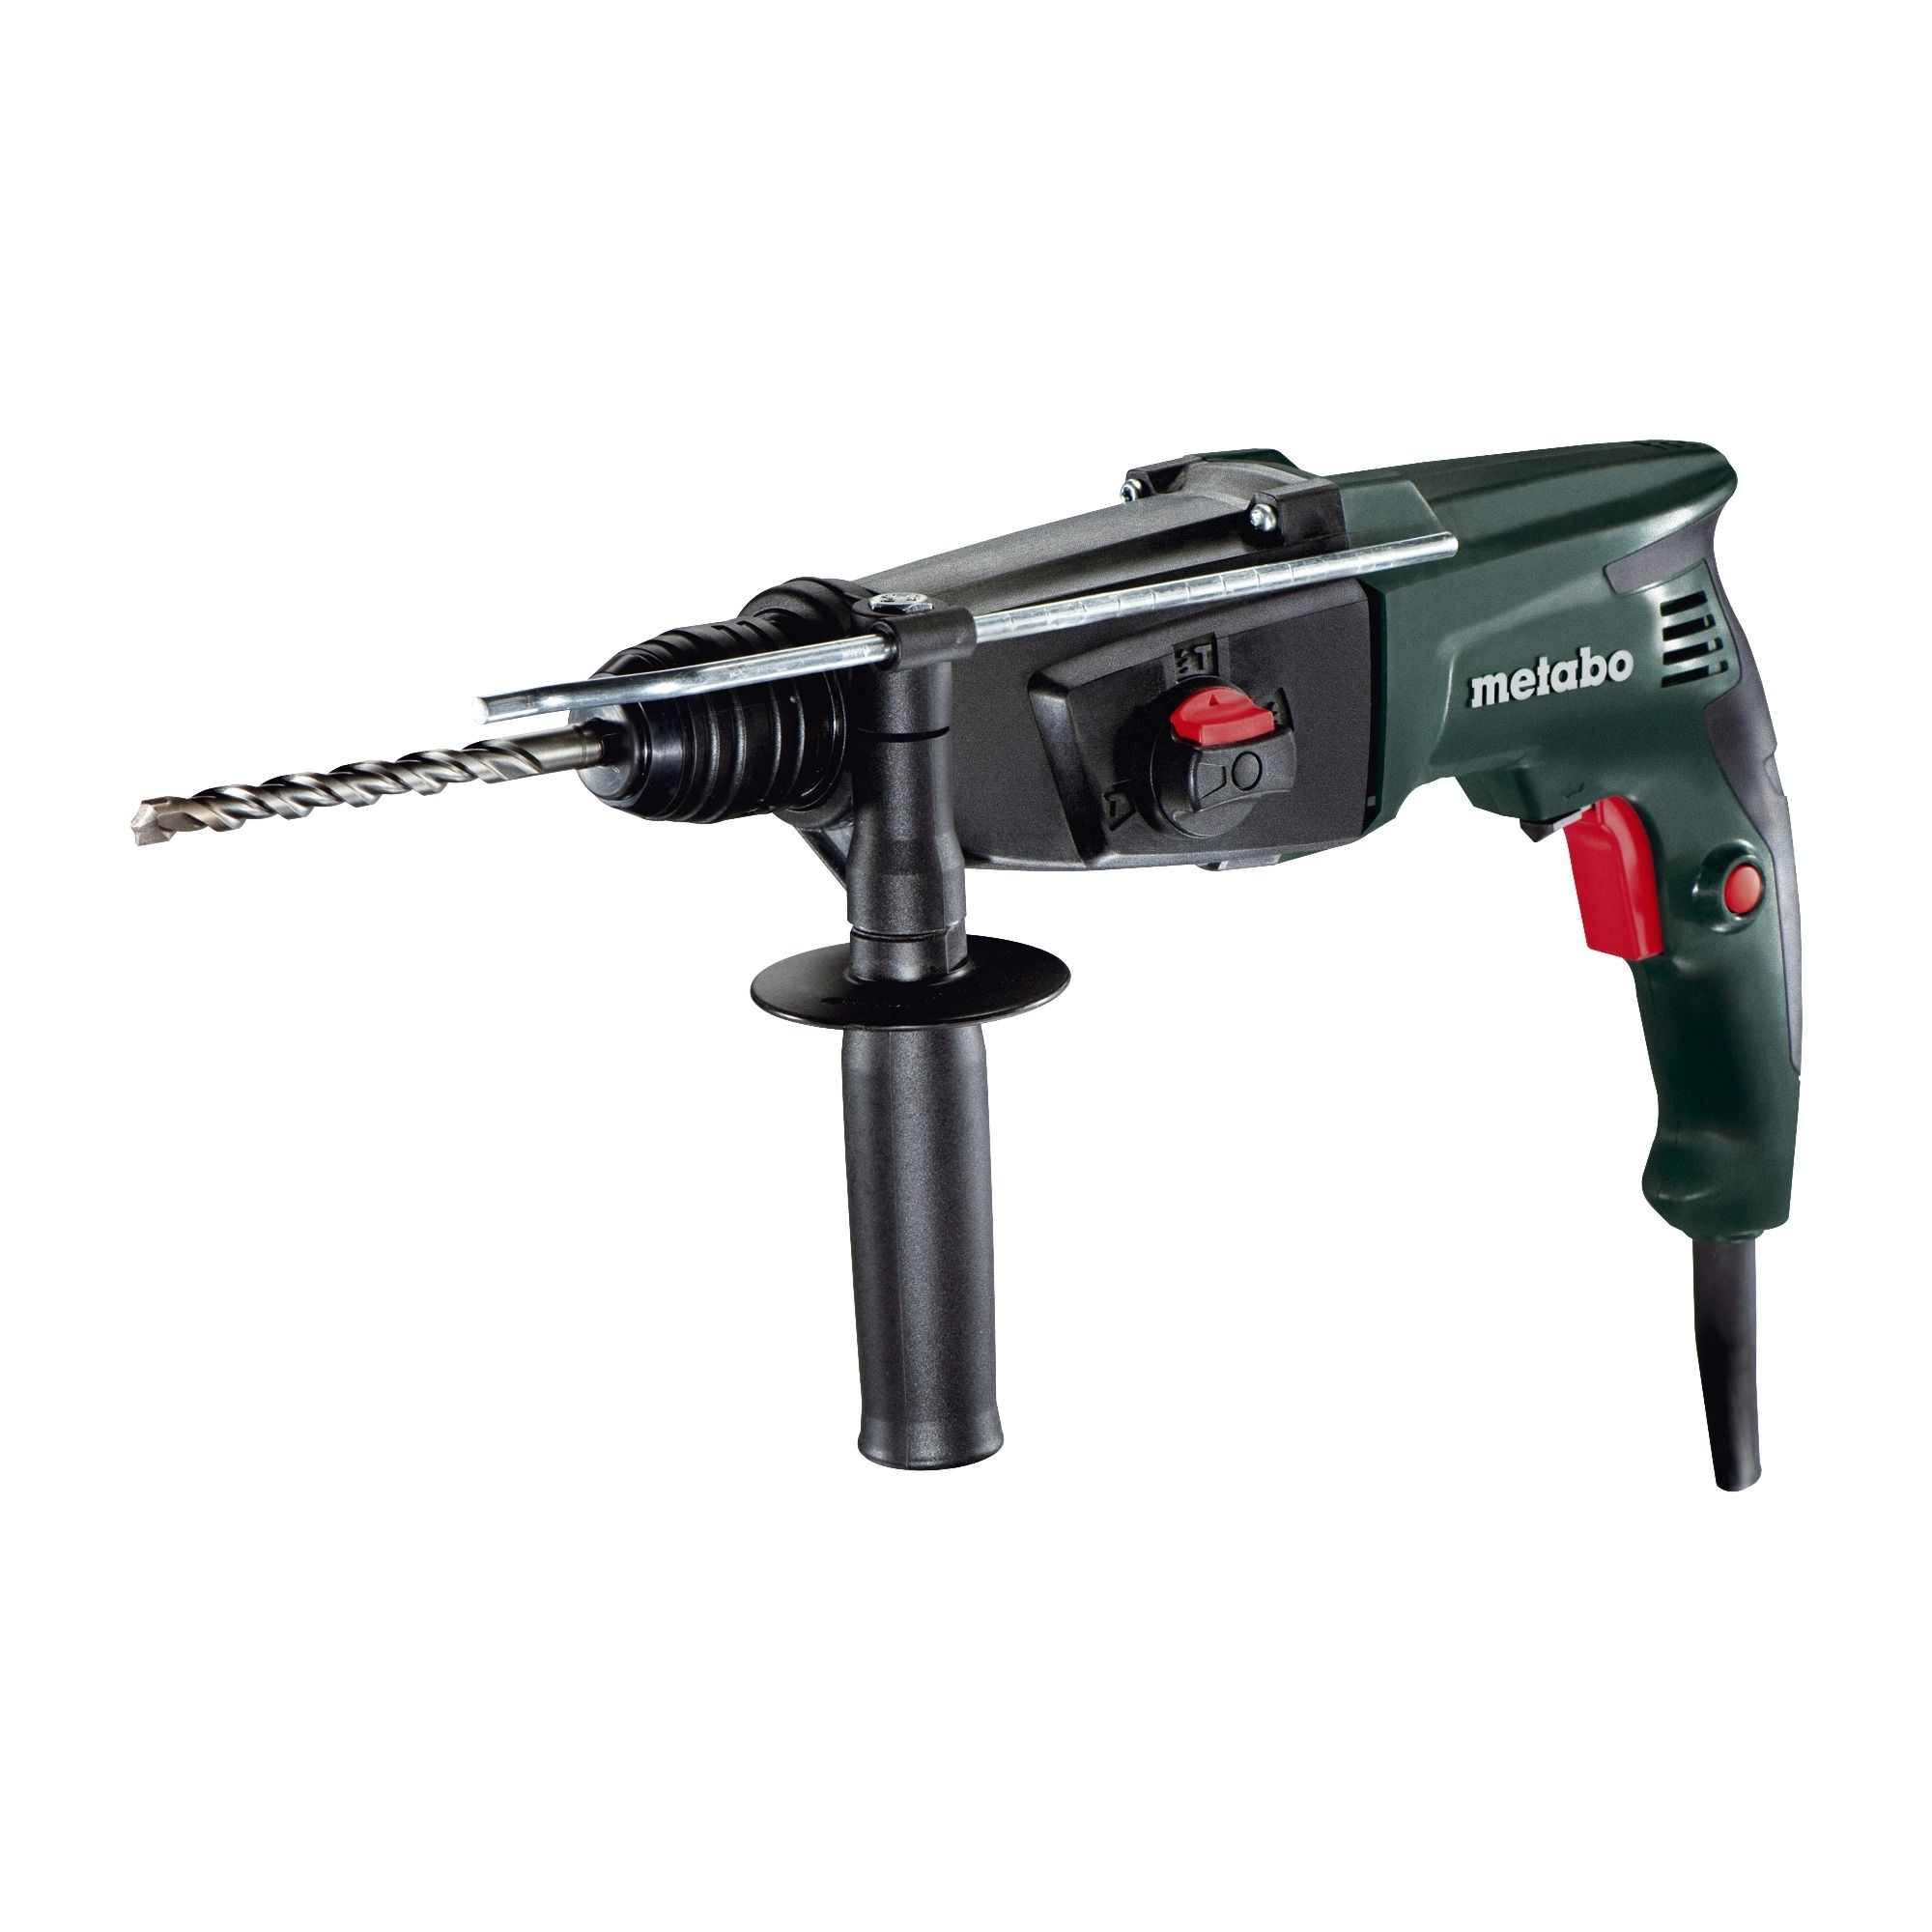 Combi Boorhamer Metabo Boorhamer Combi Khe2444 Power Tool Metabo Design Power